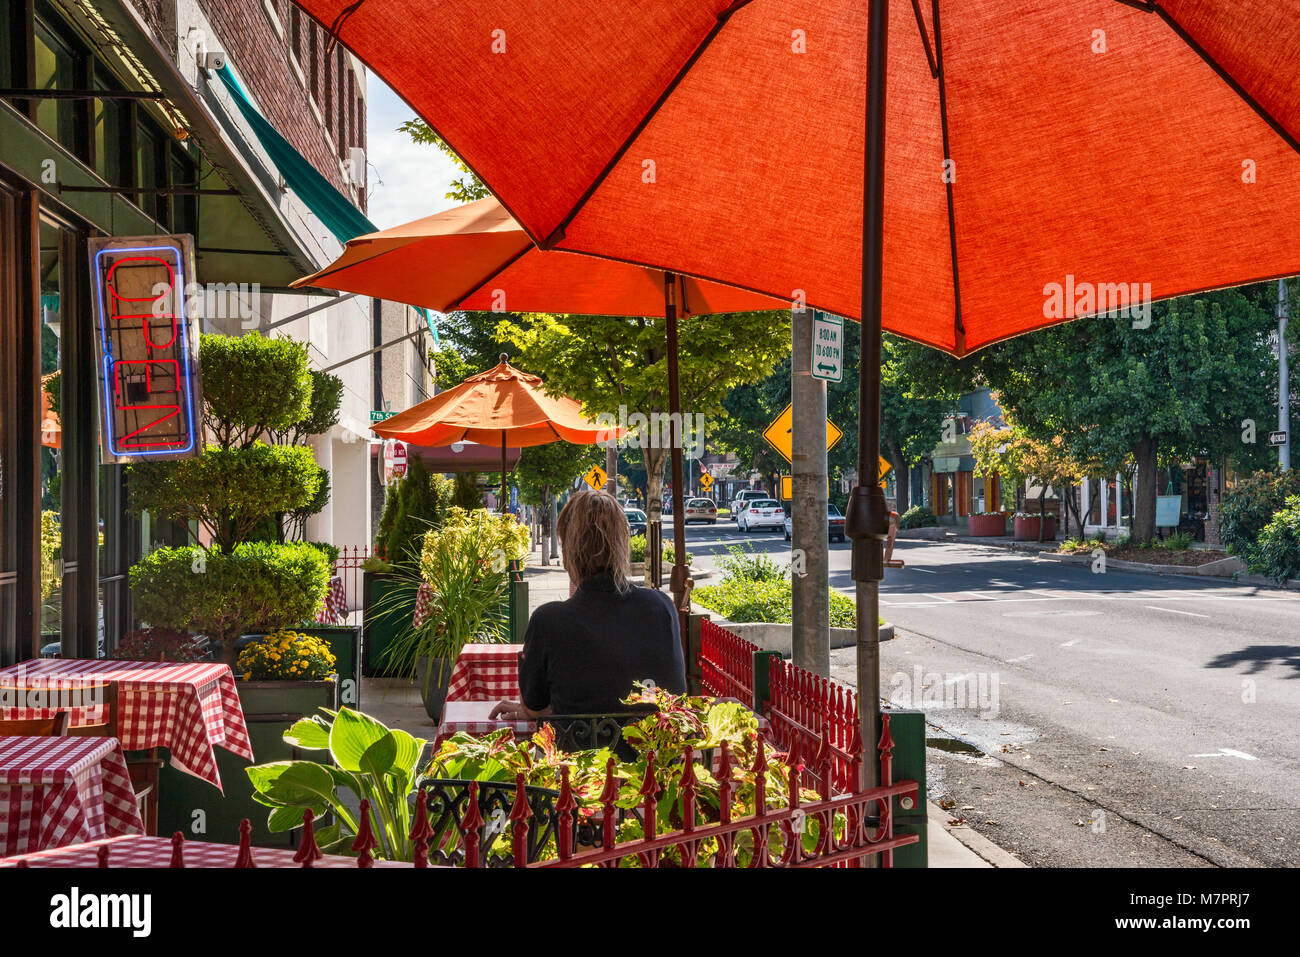 Sidewalk cafe on Main Street in downtown business district of Lewiston, Idaho, USA - Stock Image